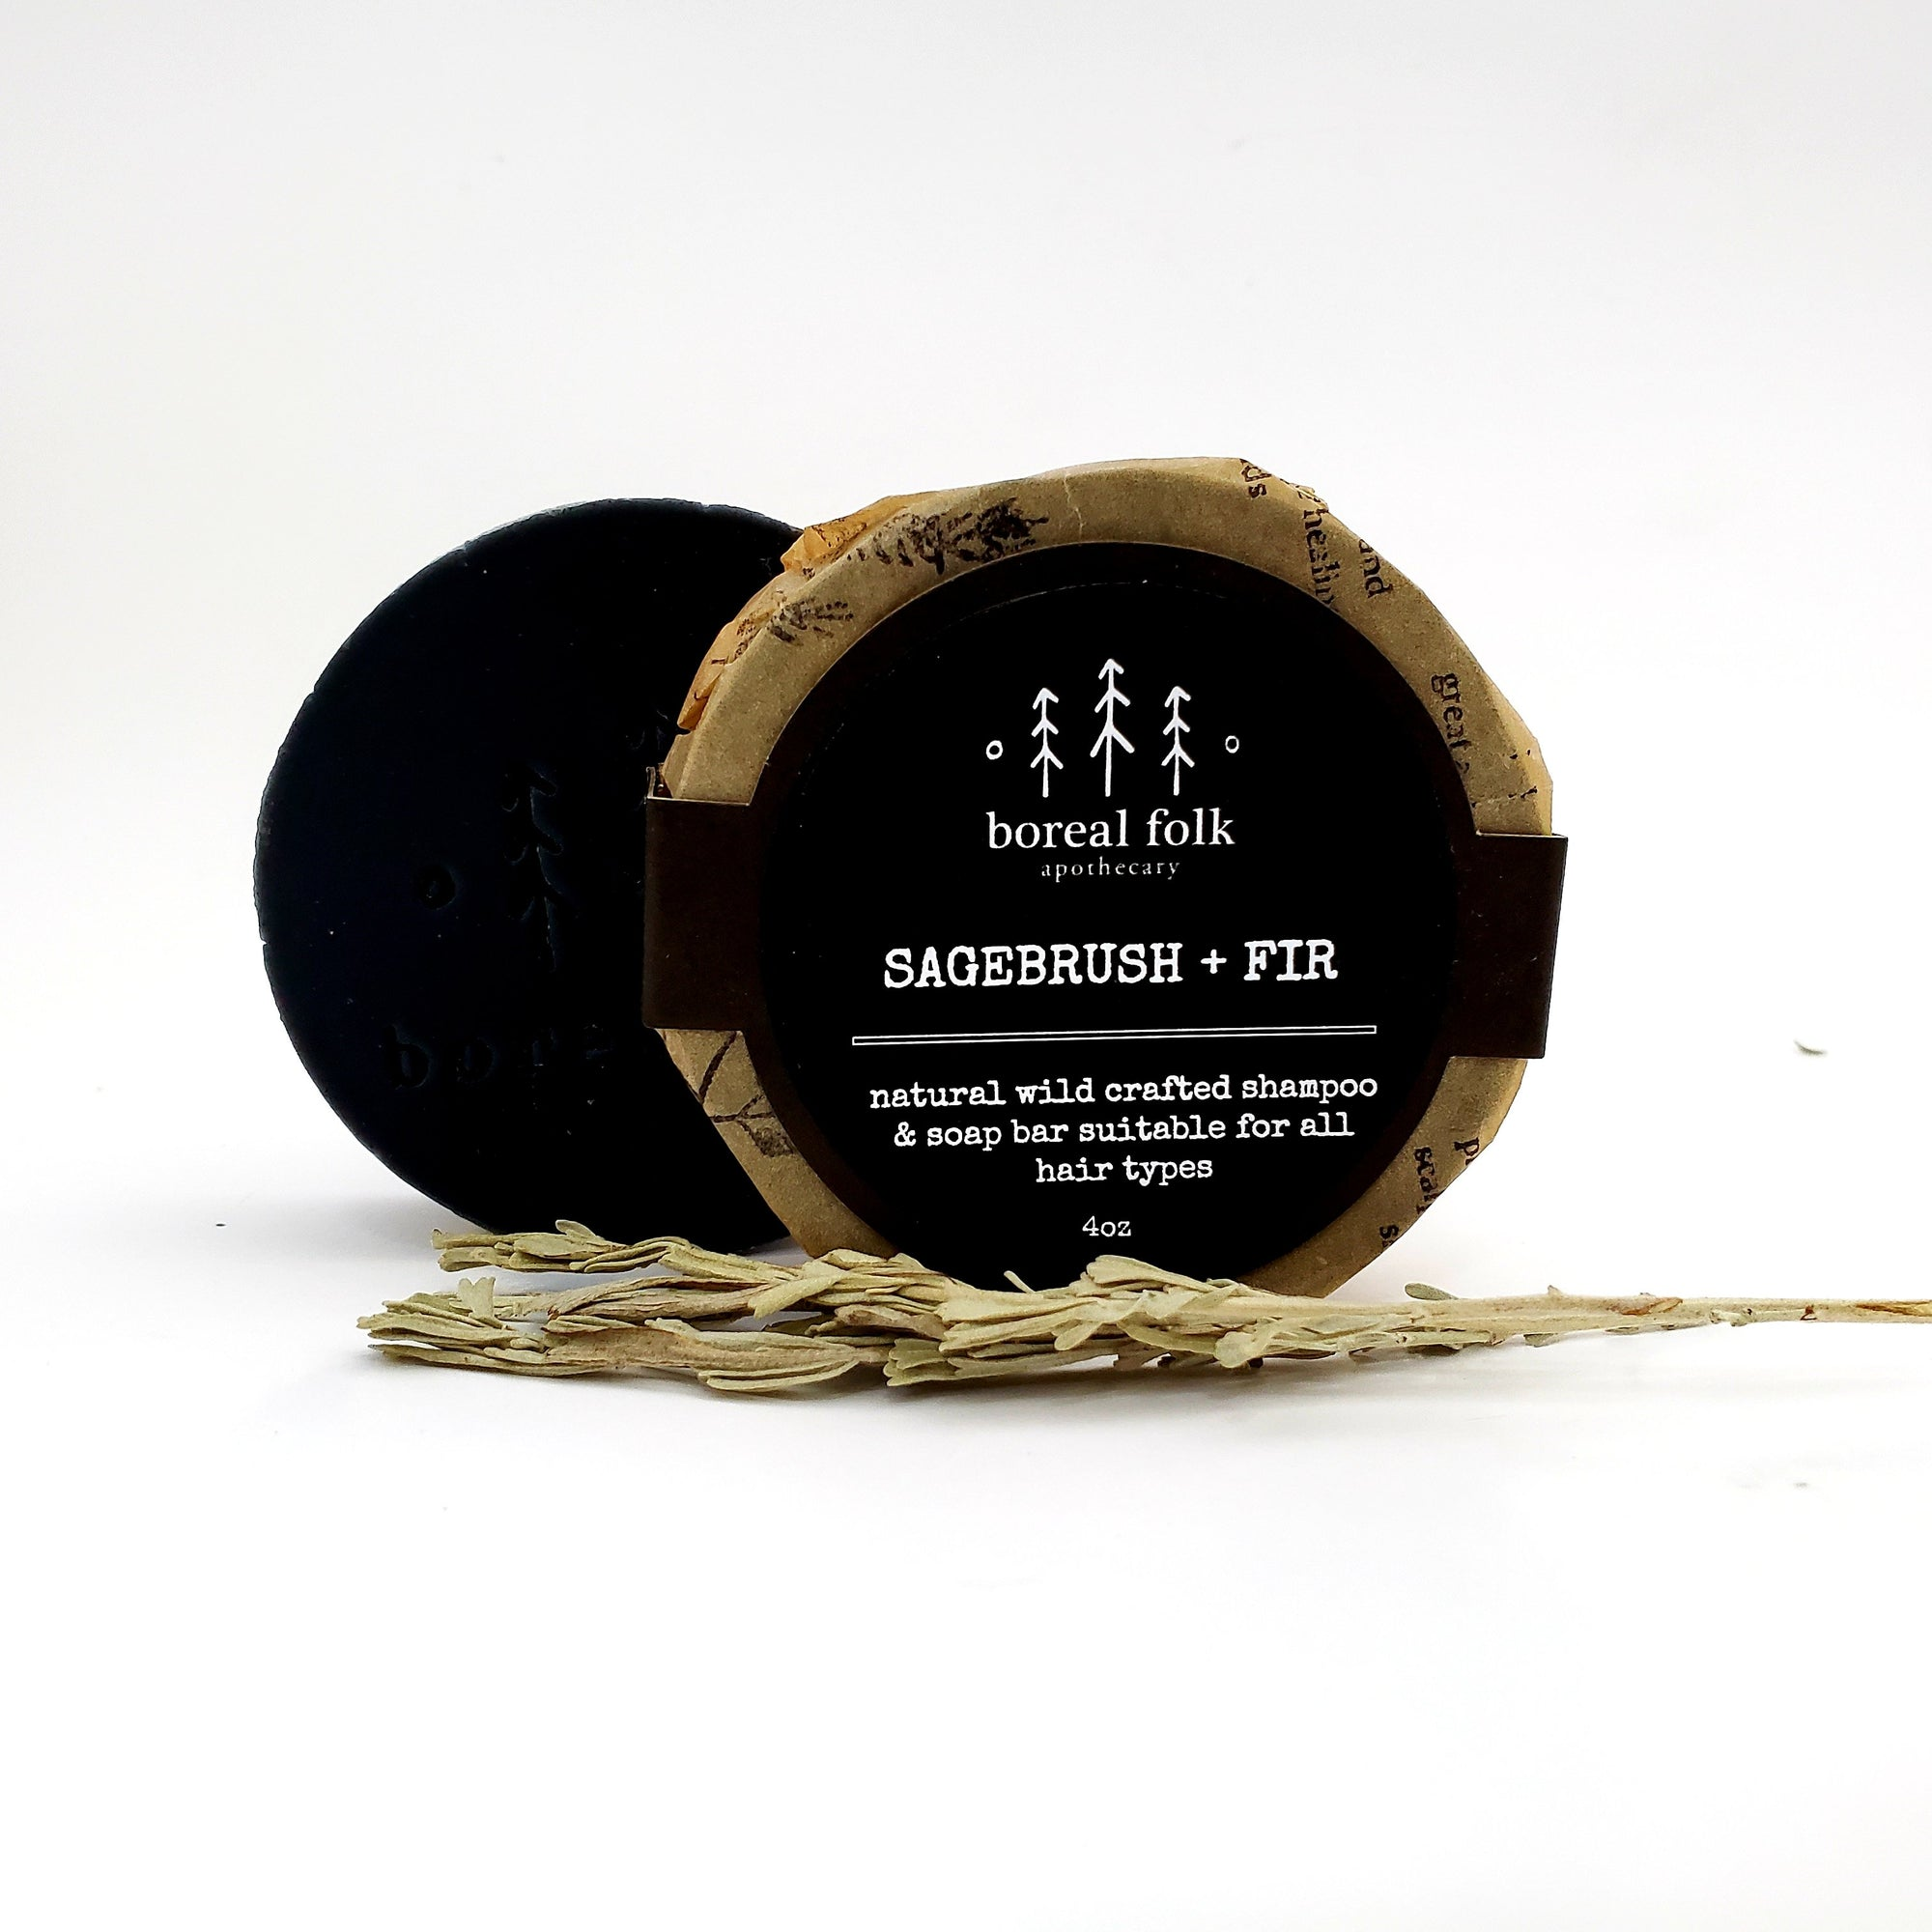 Sagebrush + Fir Soap/Shampoo Bar